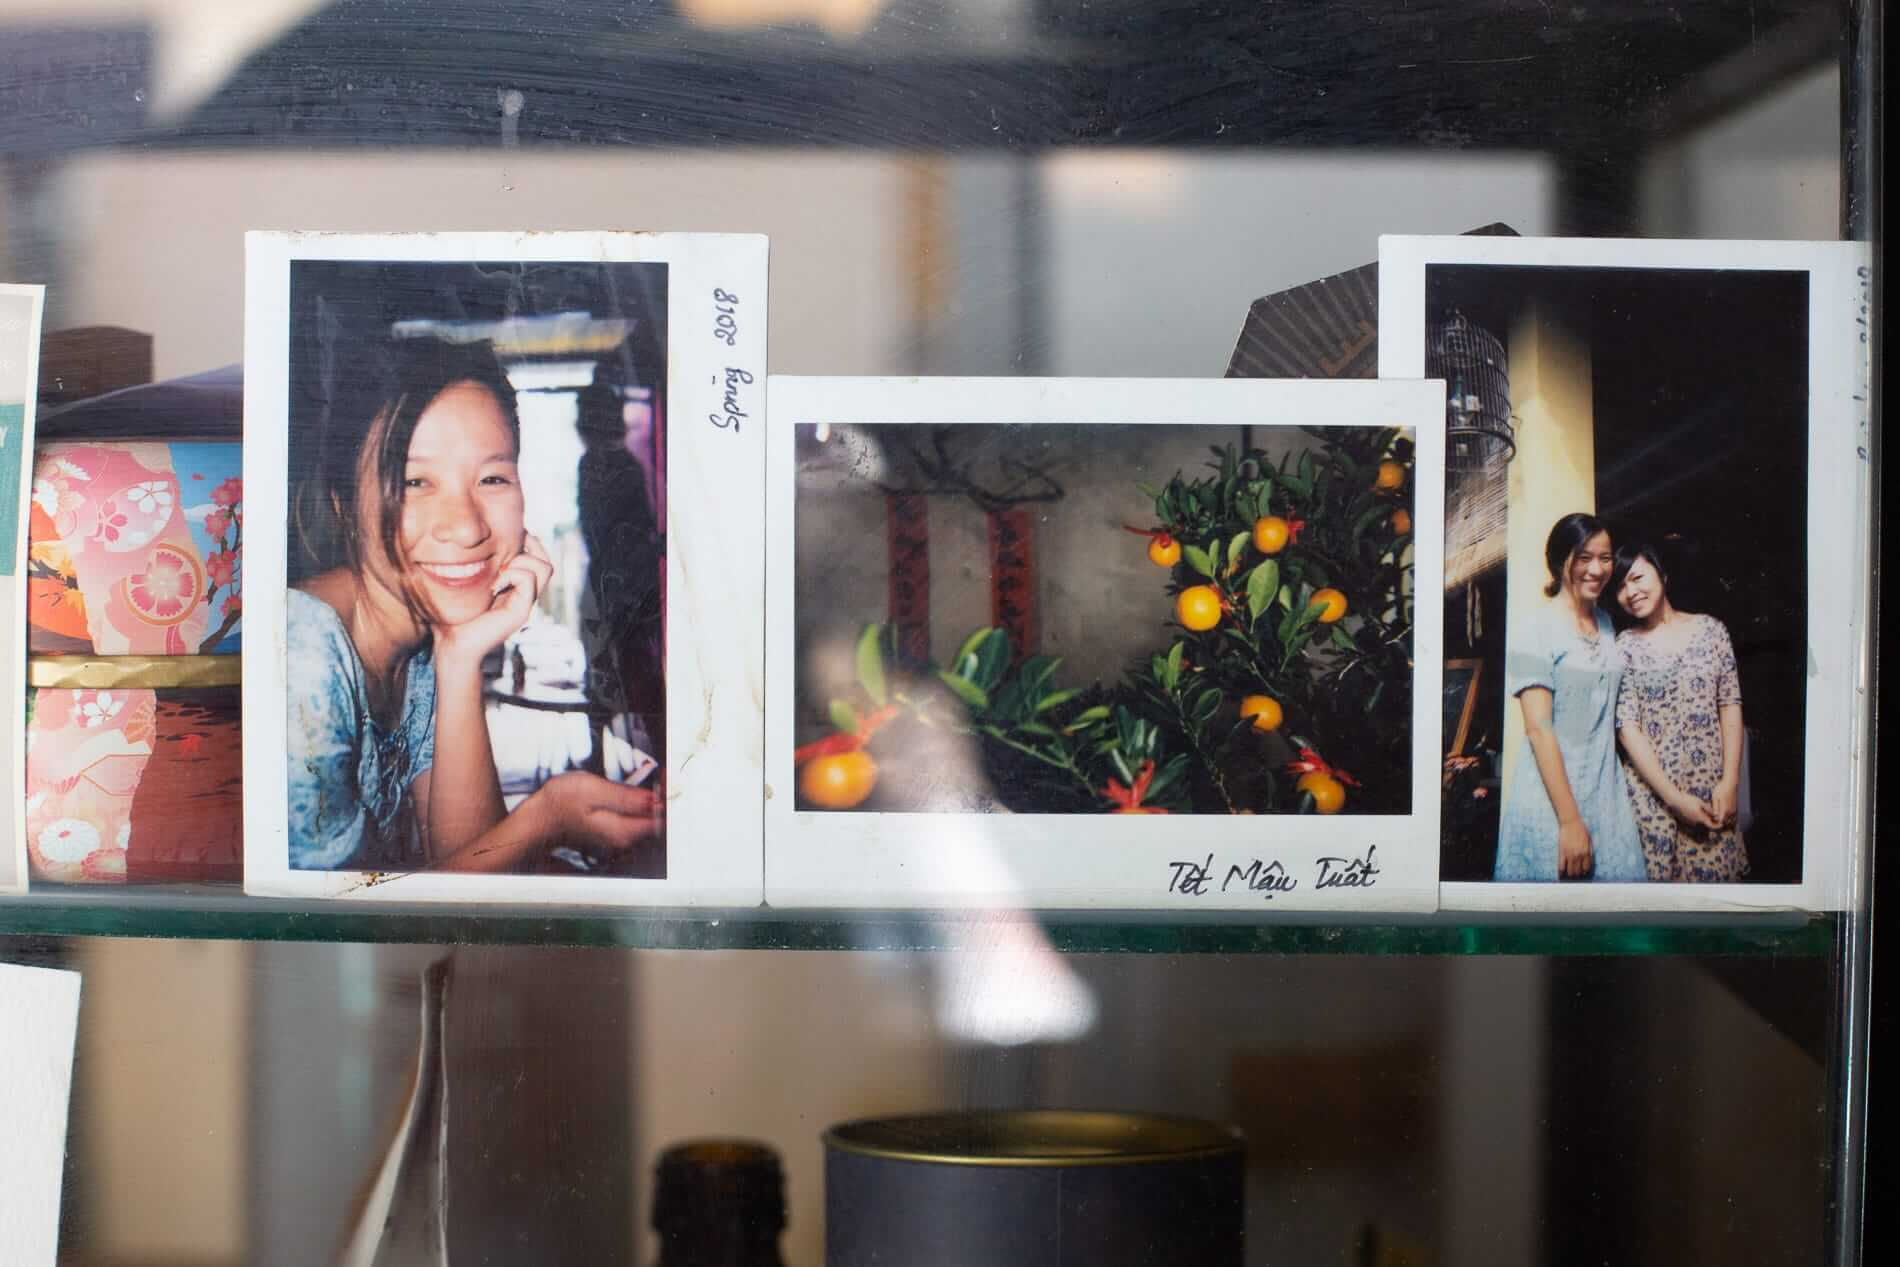 Instant photos in a cafe